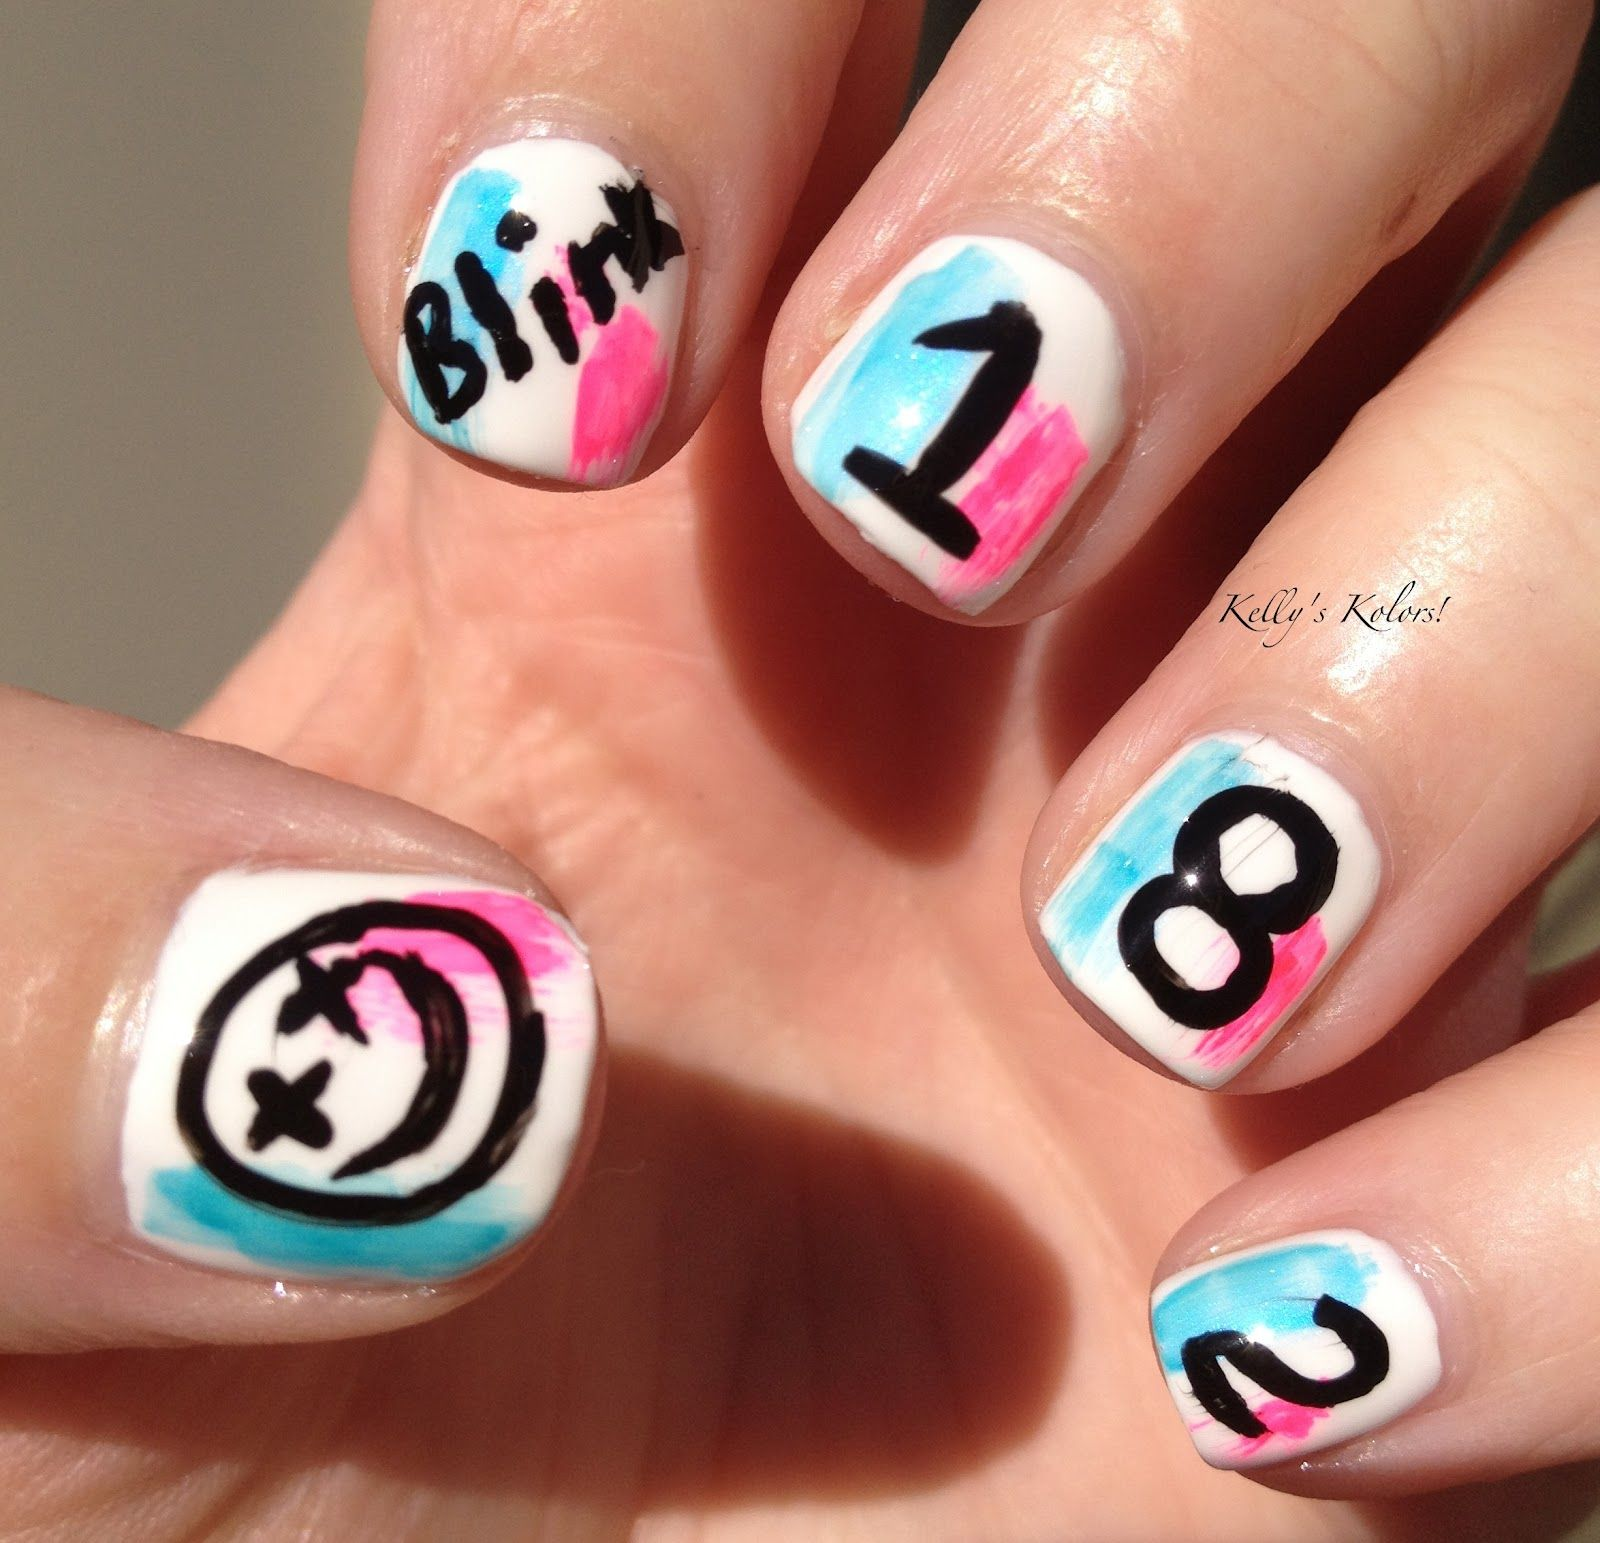 Blink-182 Nail Art, true fan would do this | Back to school ...